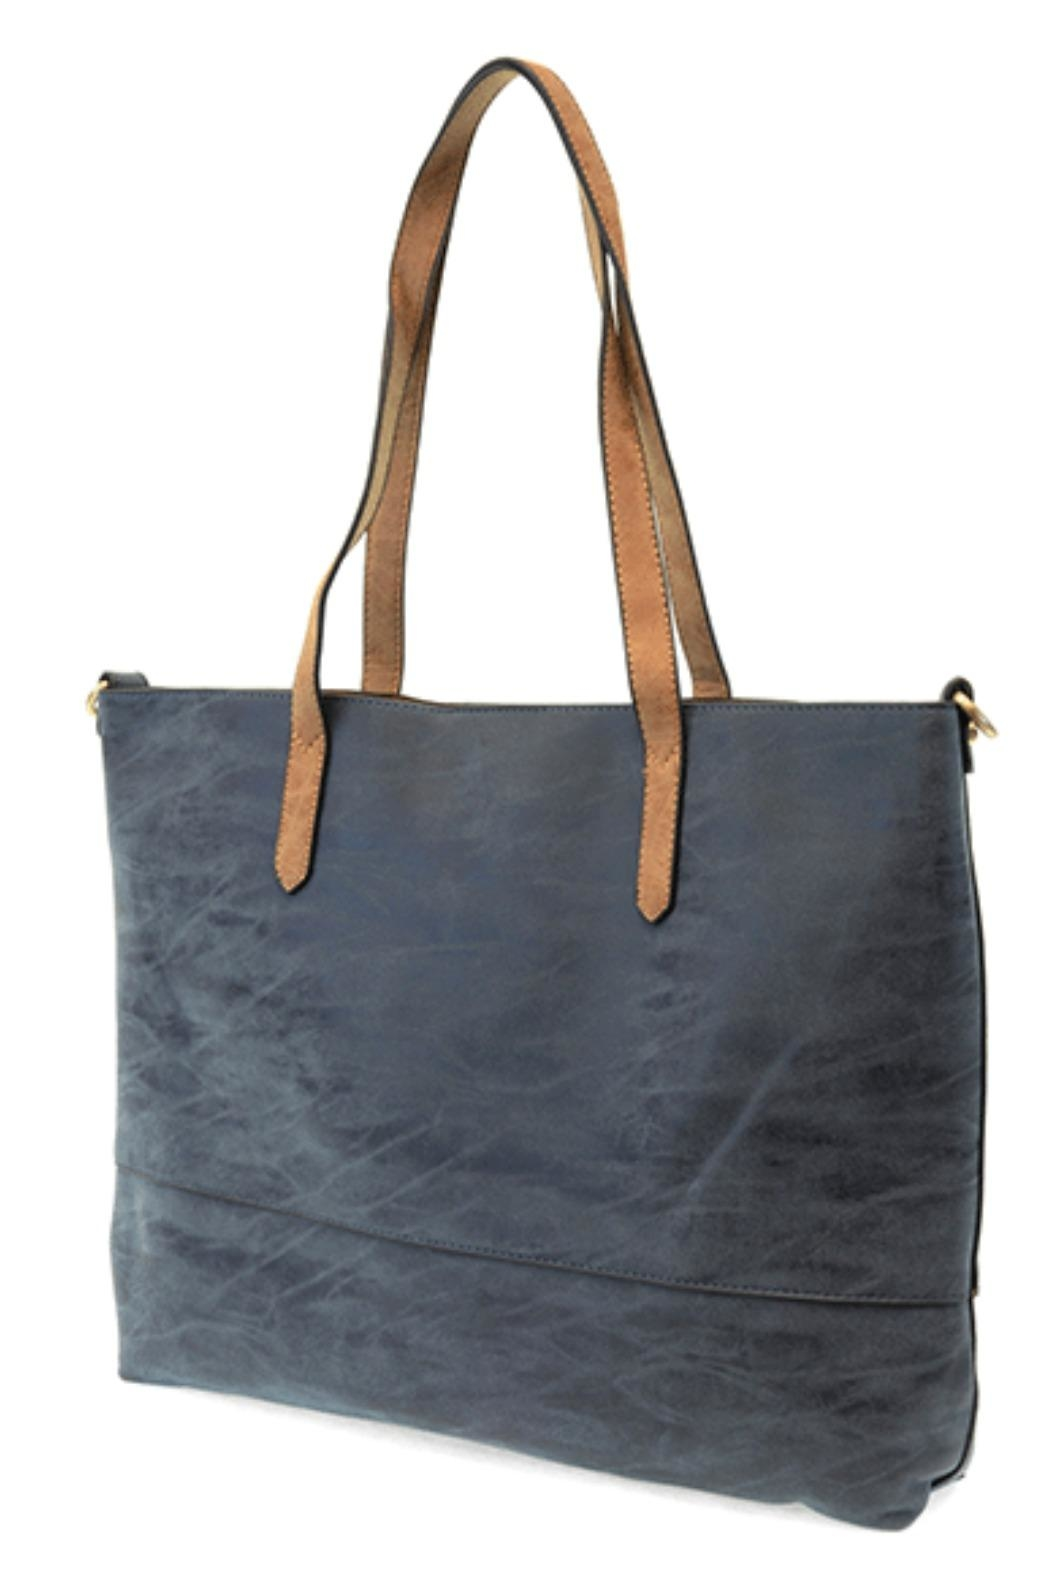 Joy Susan Accessories Brushed 2-In-1 Tote - Main Image